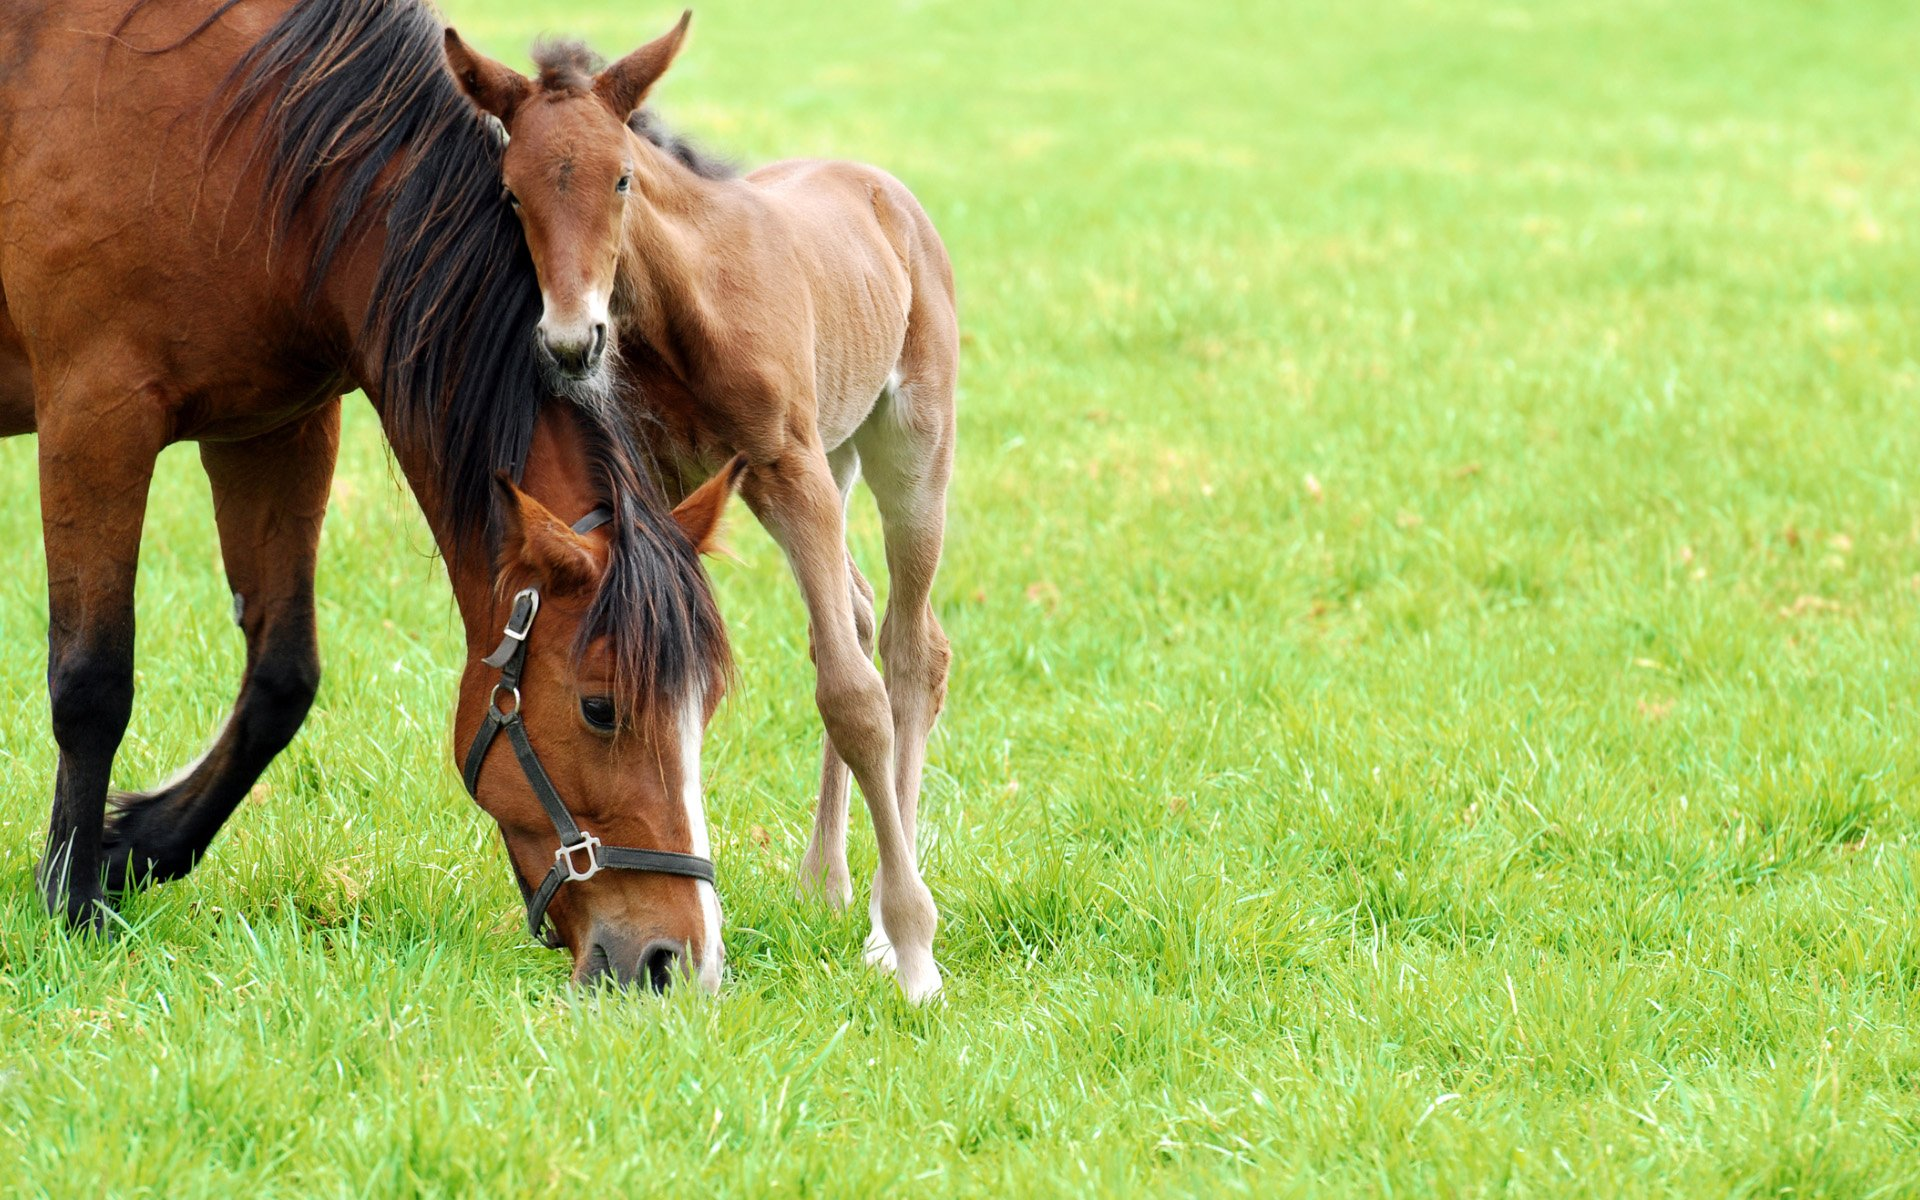 Images of Mother Horse with Foal